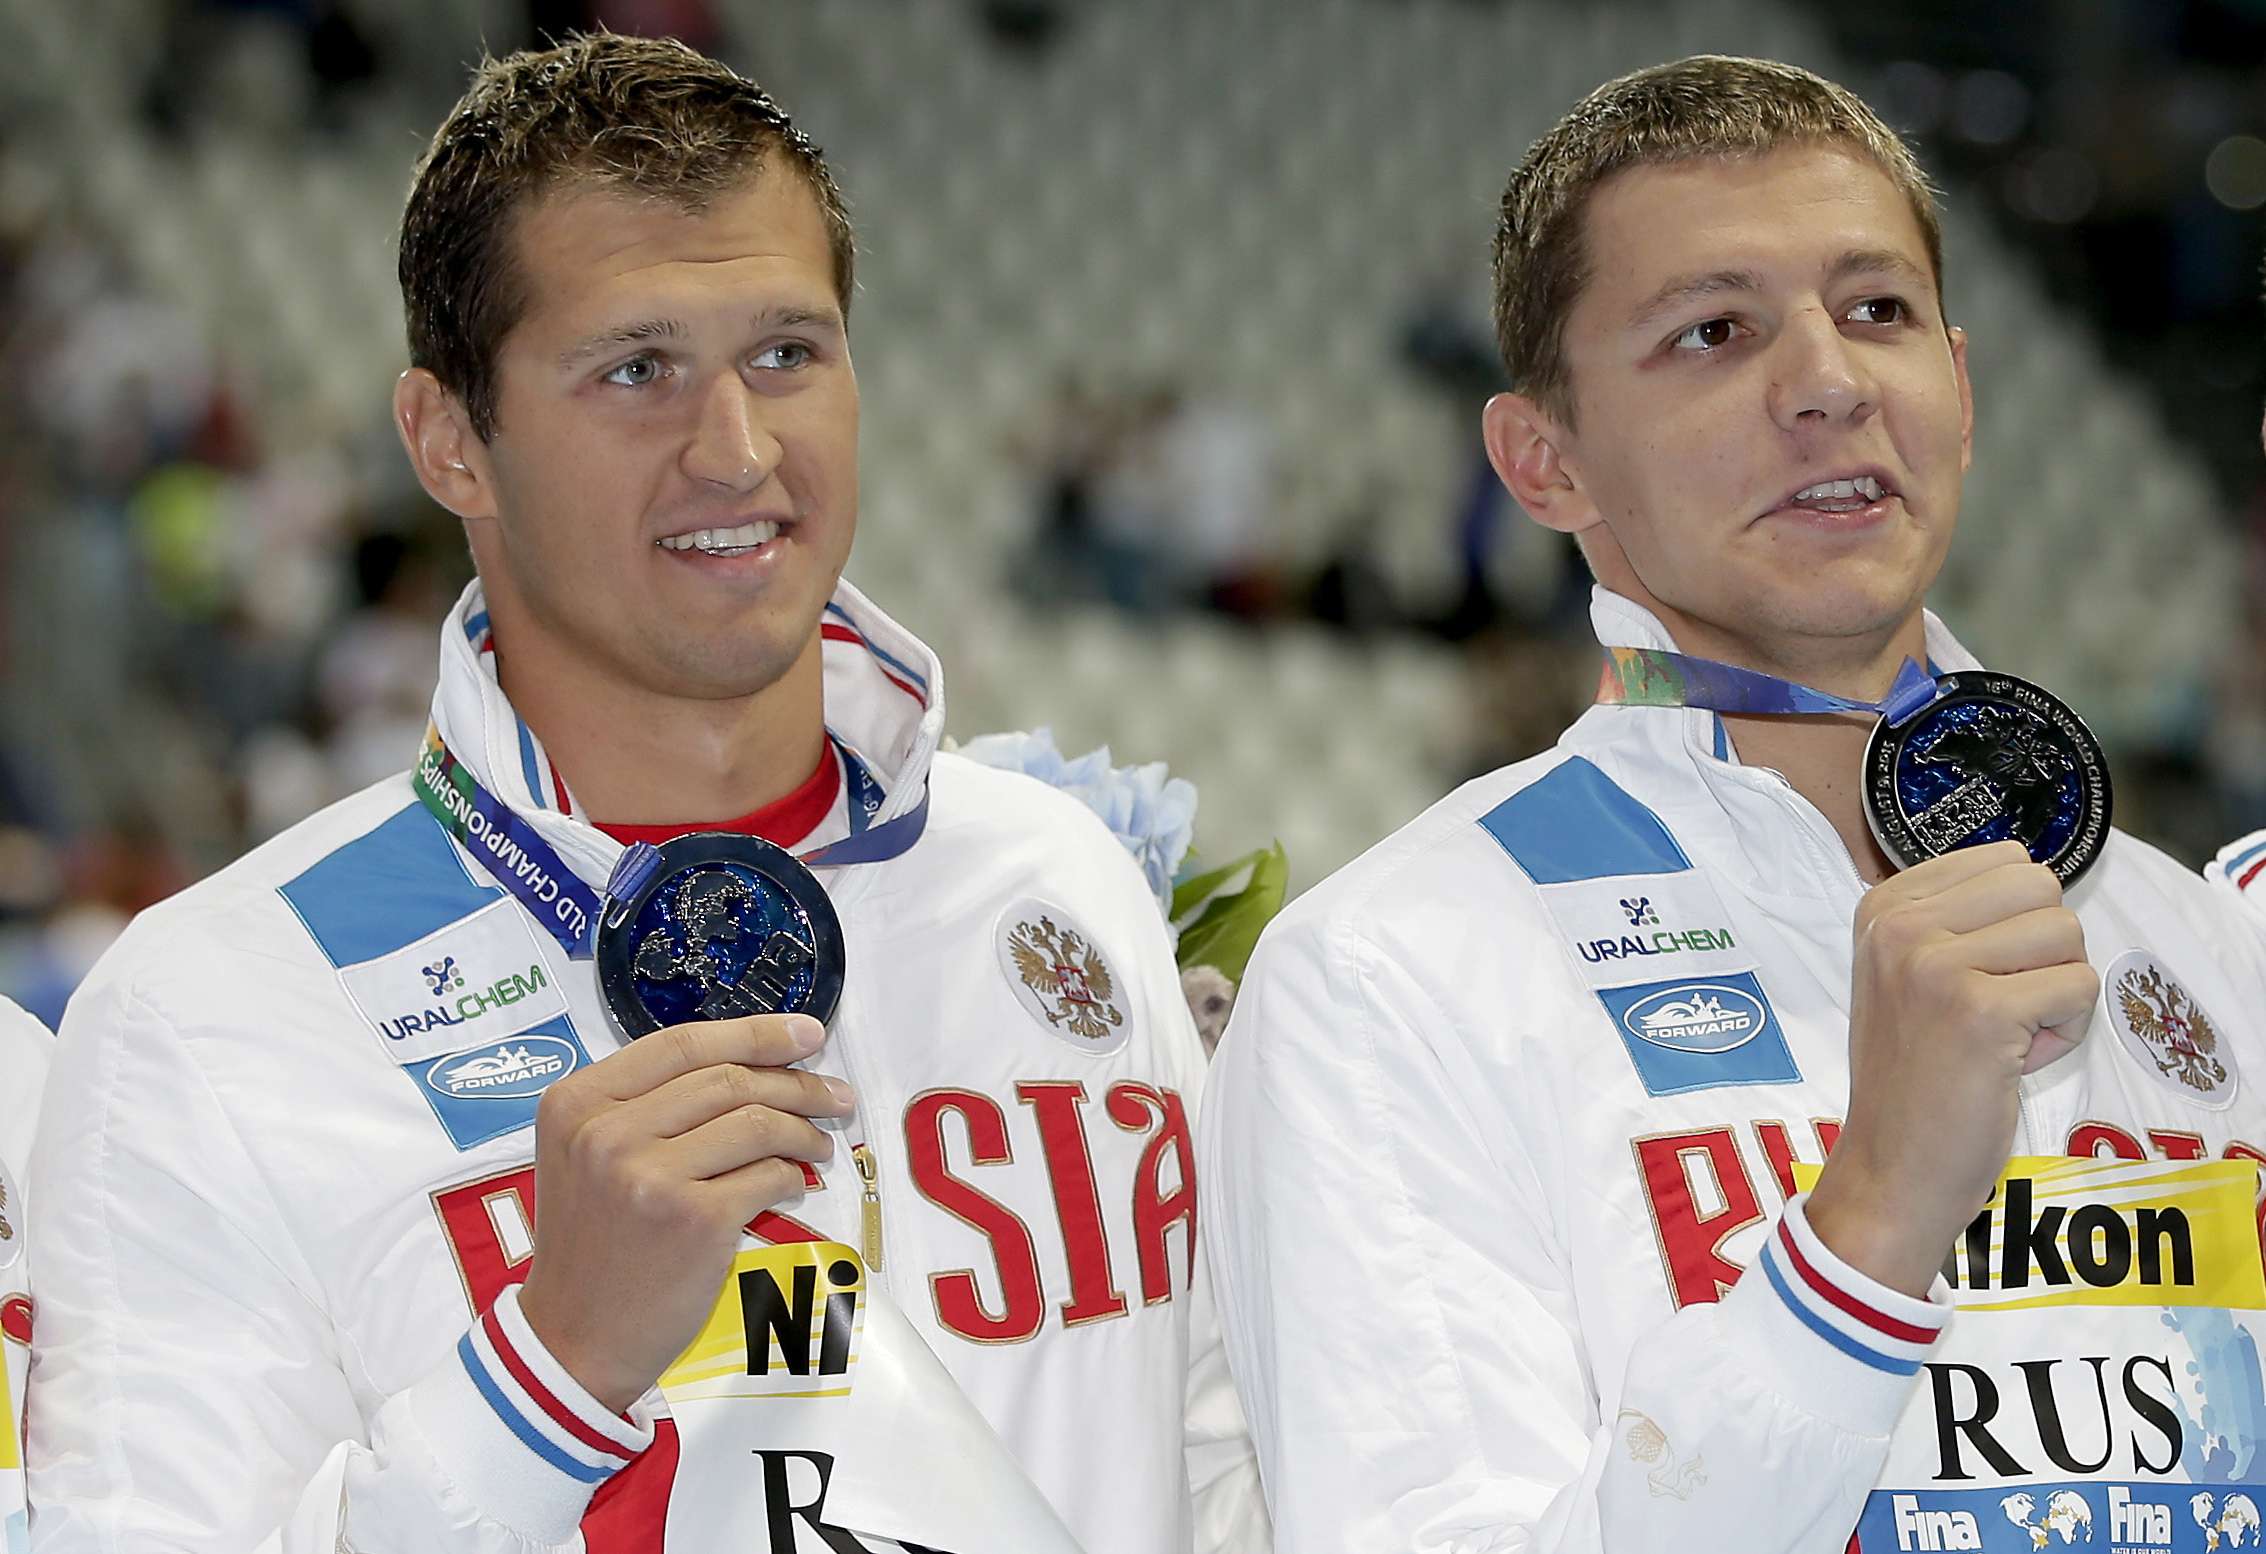 FILE - In this Aug. 2, 2015, file photo, Russian swimmers Nikita Lobintsev, left, and Vladimir Morozov hold up their silver medals at the Swimming World Championships in Kazan, Russia. FINA says three more swimmers were identified by World Anti-Doping Age